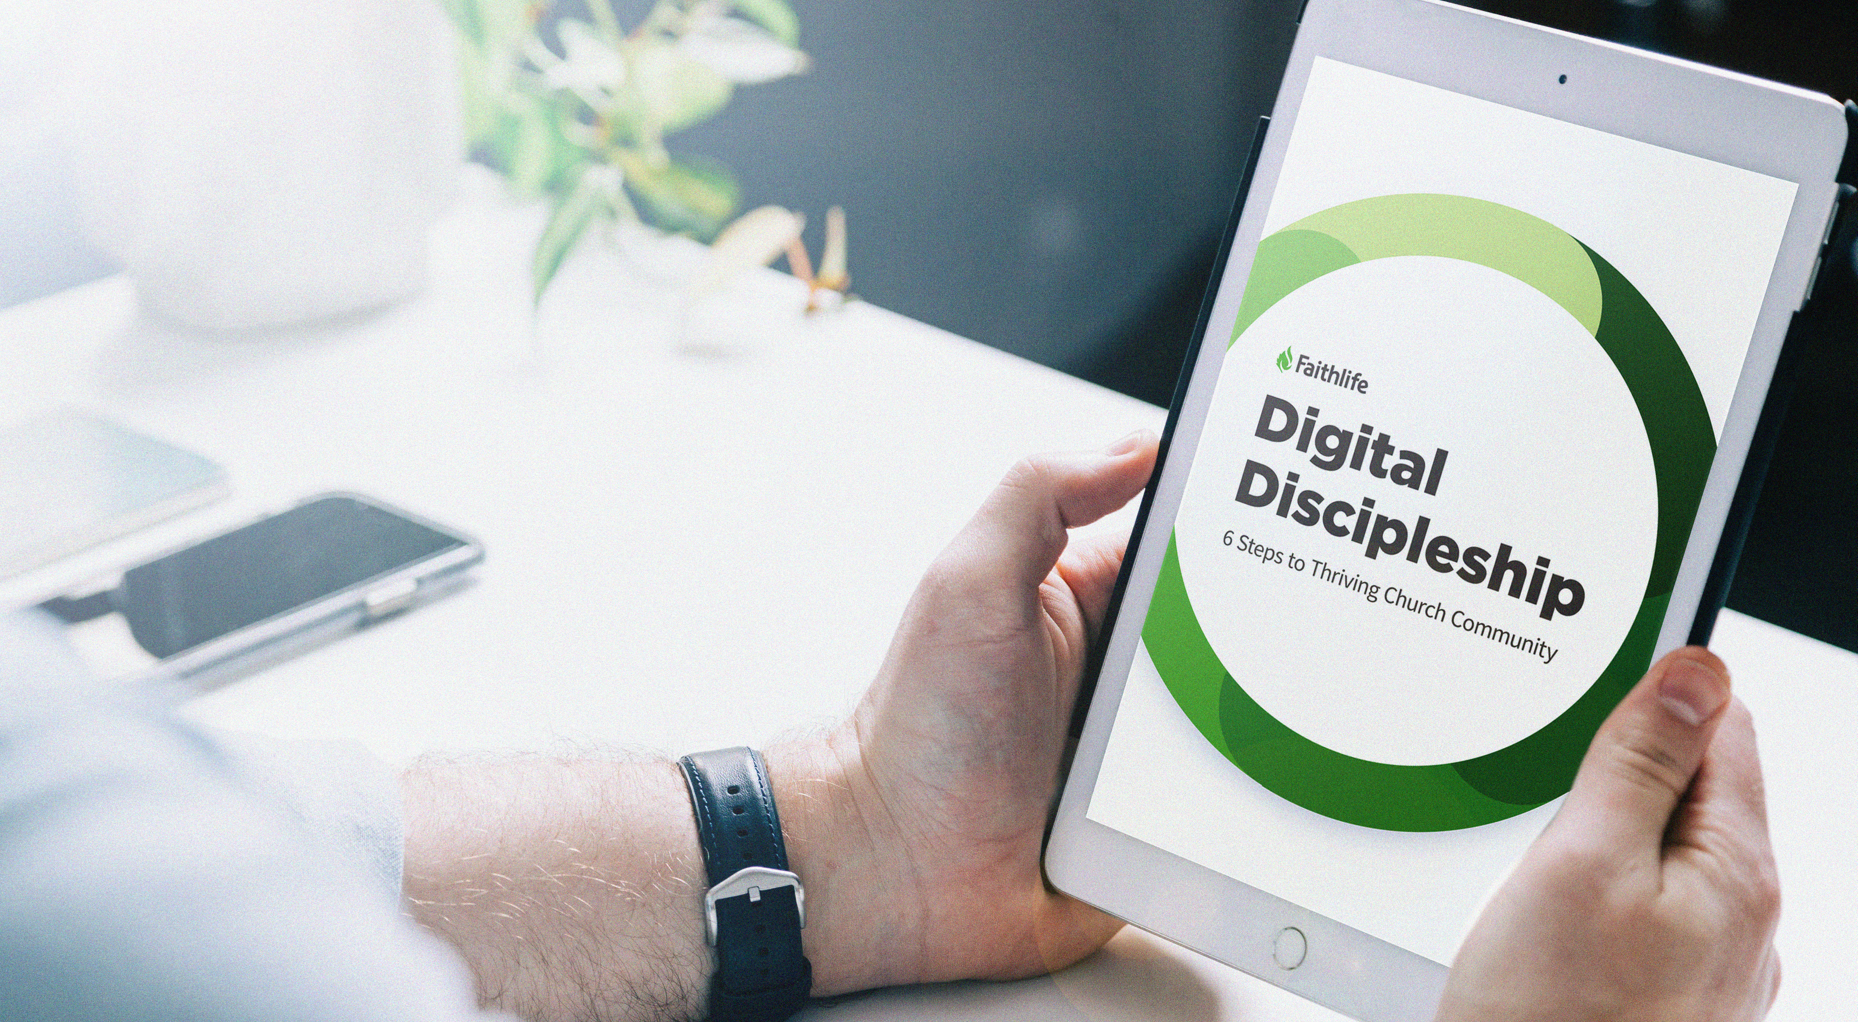 Digital Discipleship guide on an iPad